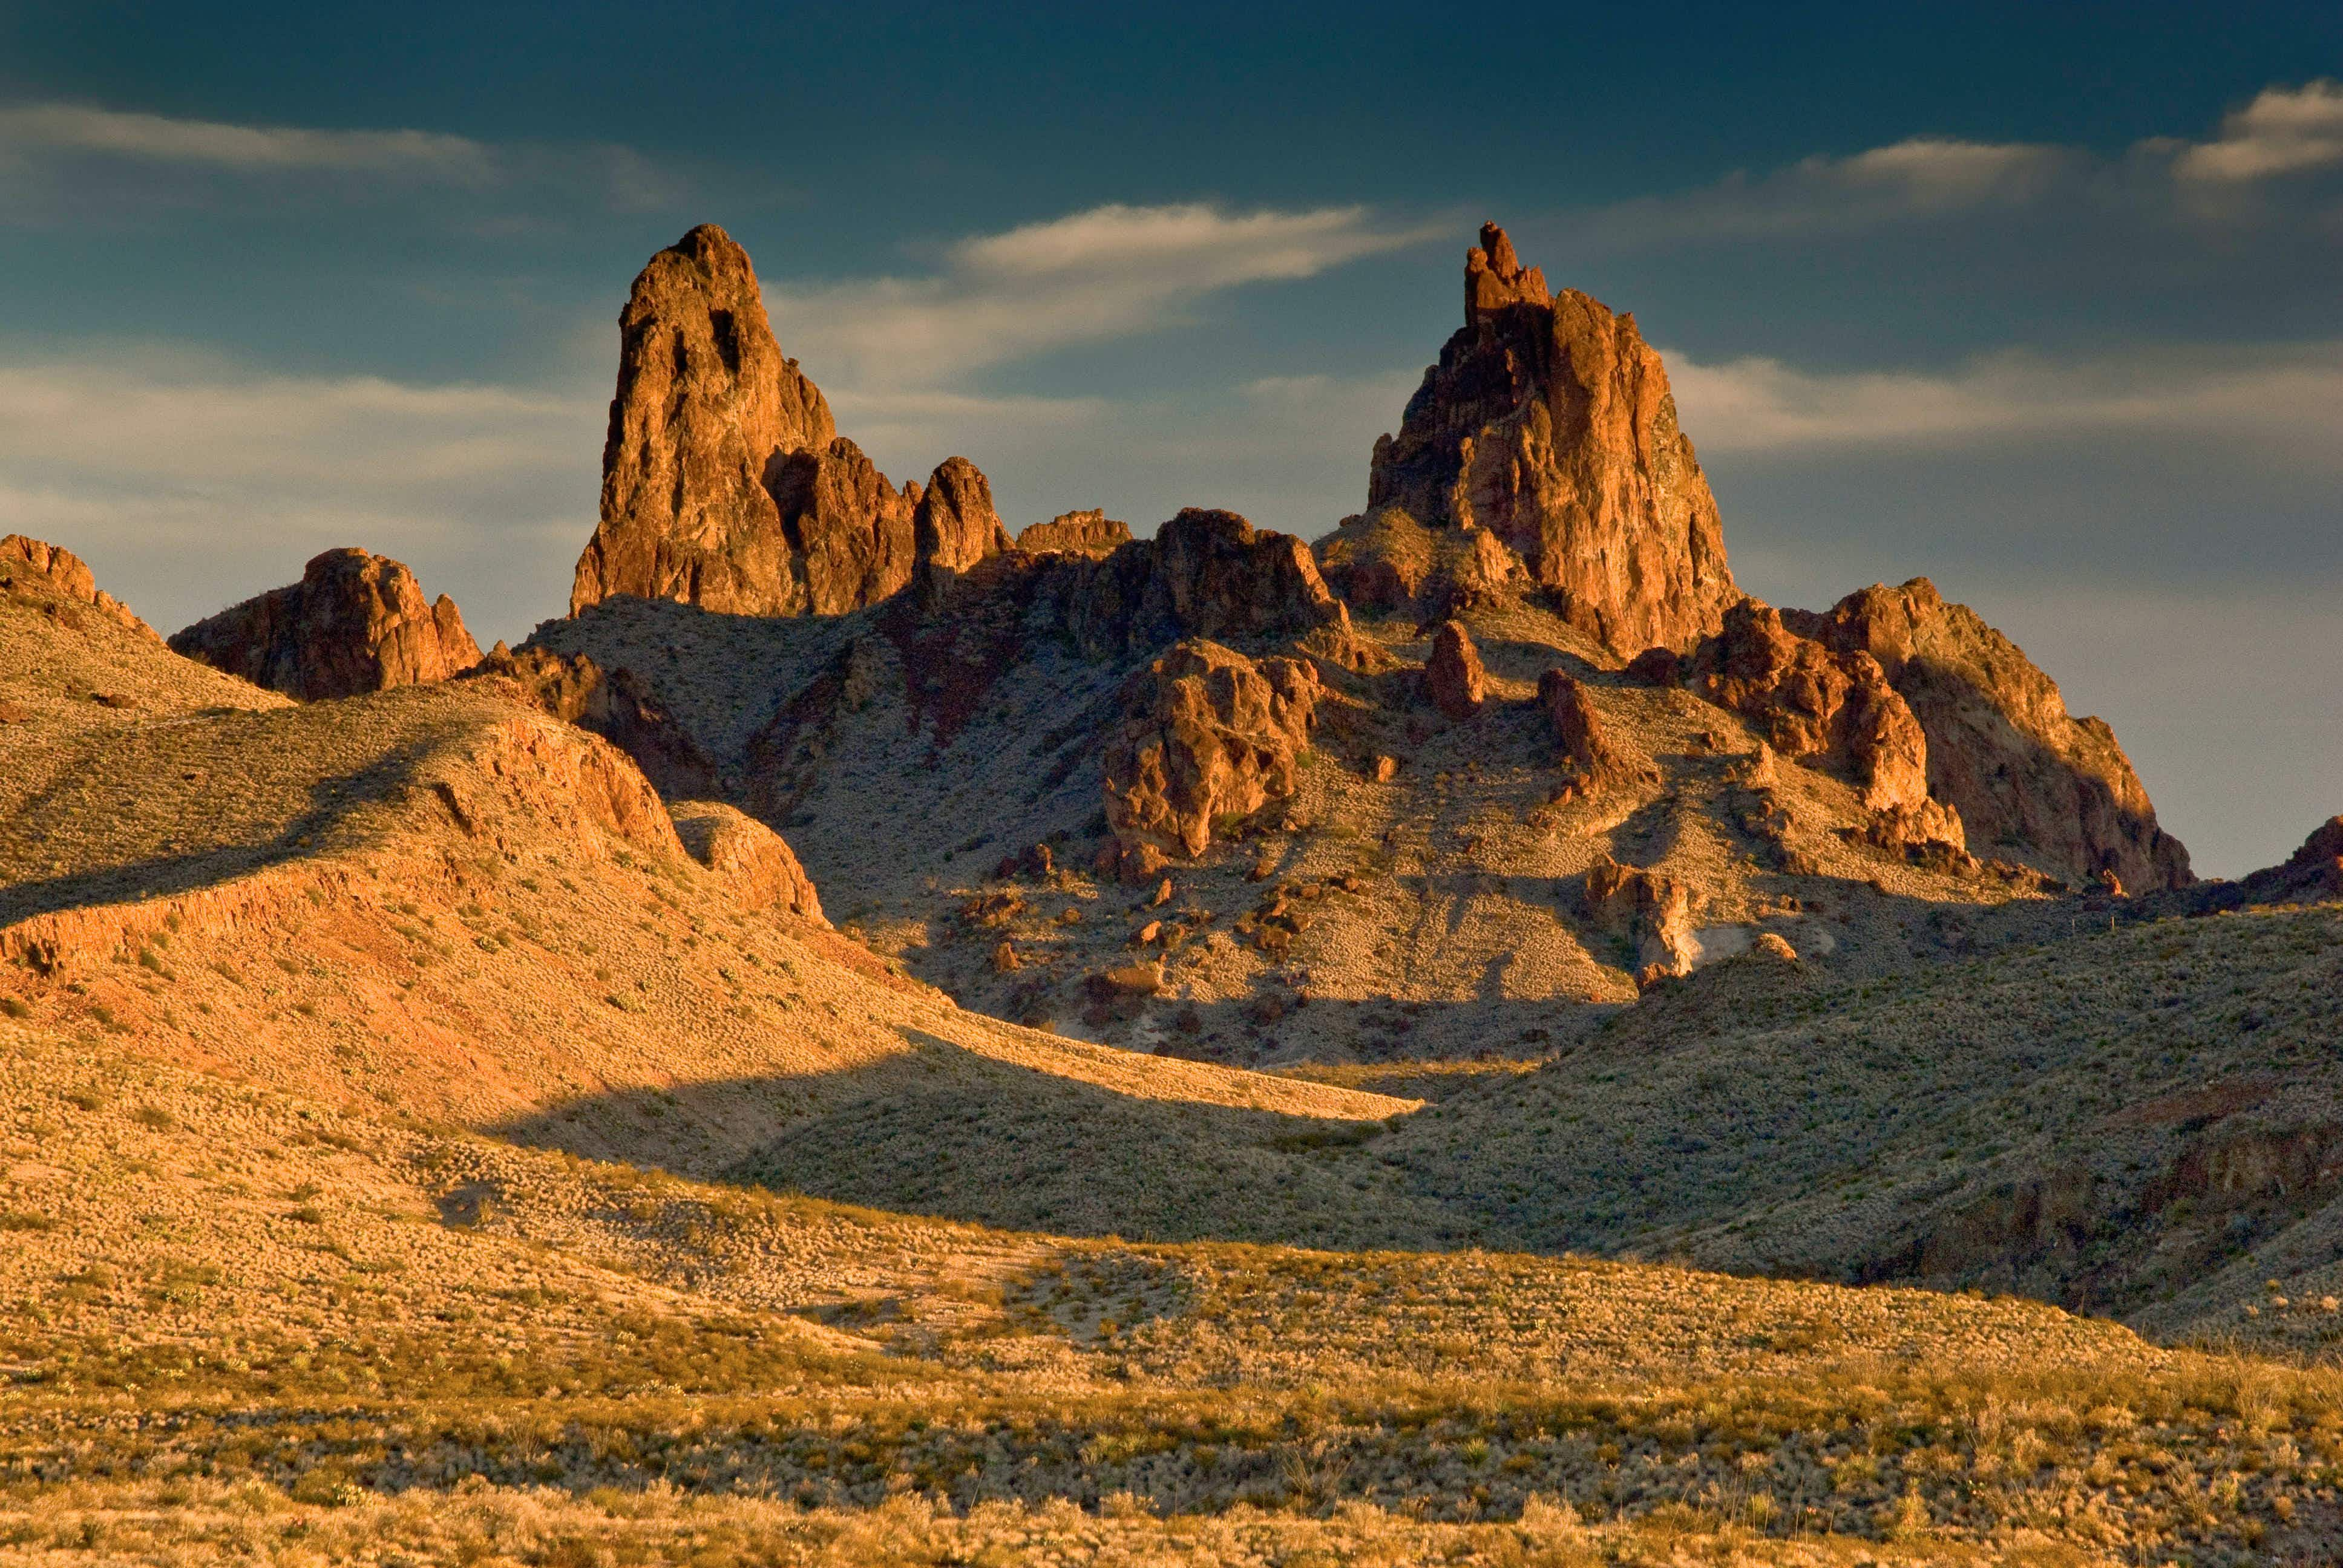 Mule Ears Peaks at sunset in Big Bend National Park © Witold Skrypczak / Alamy Stock Photo